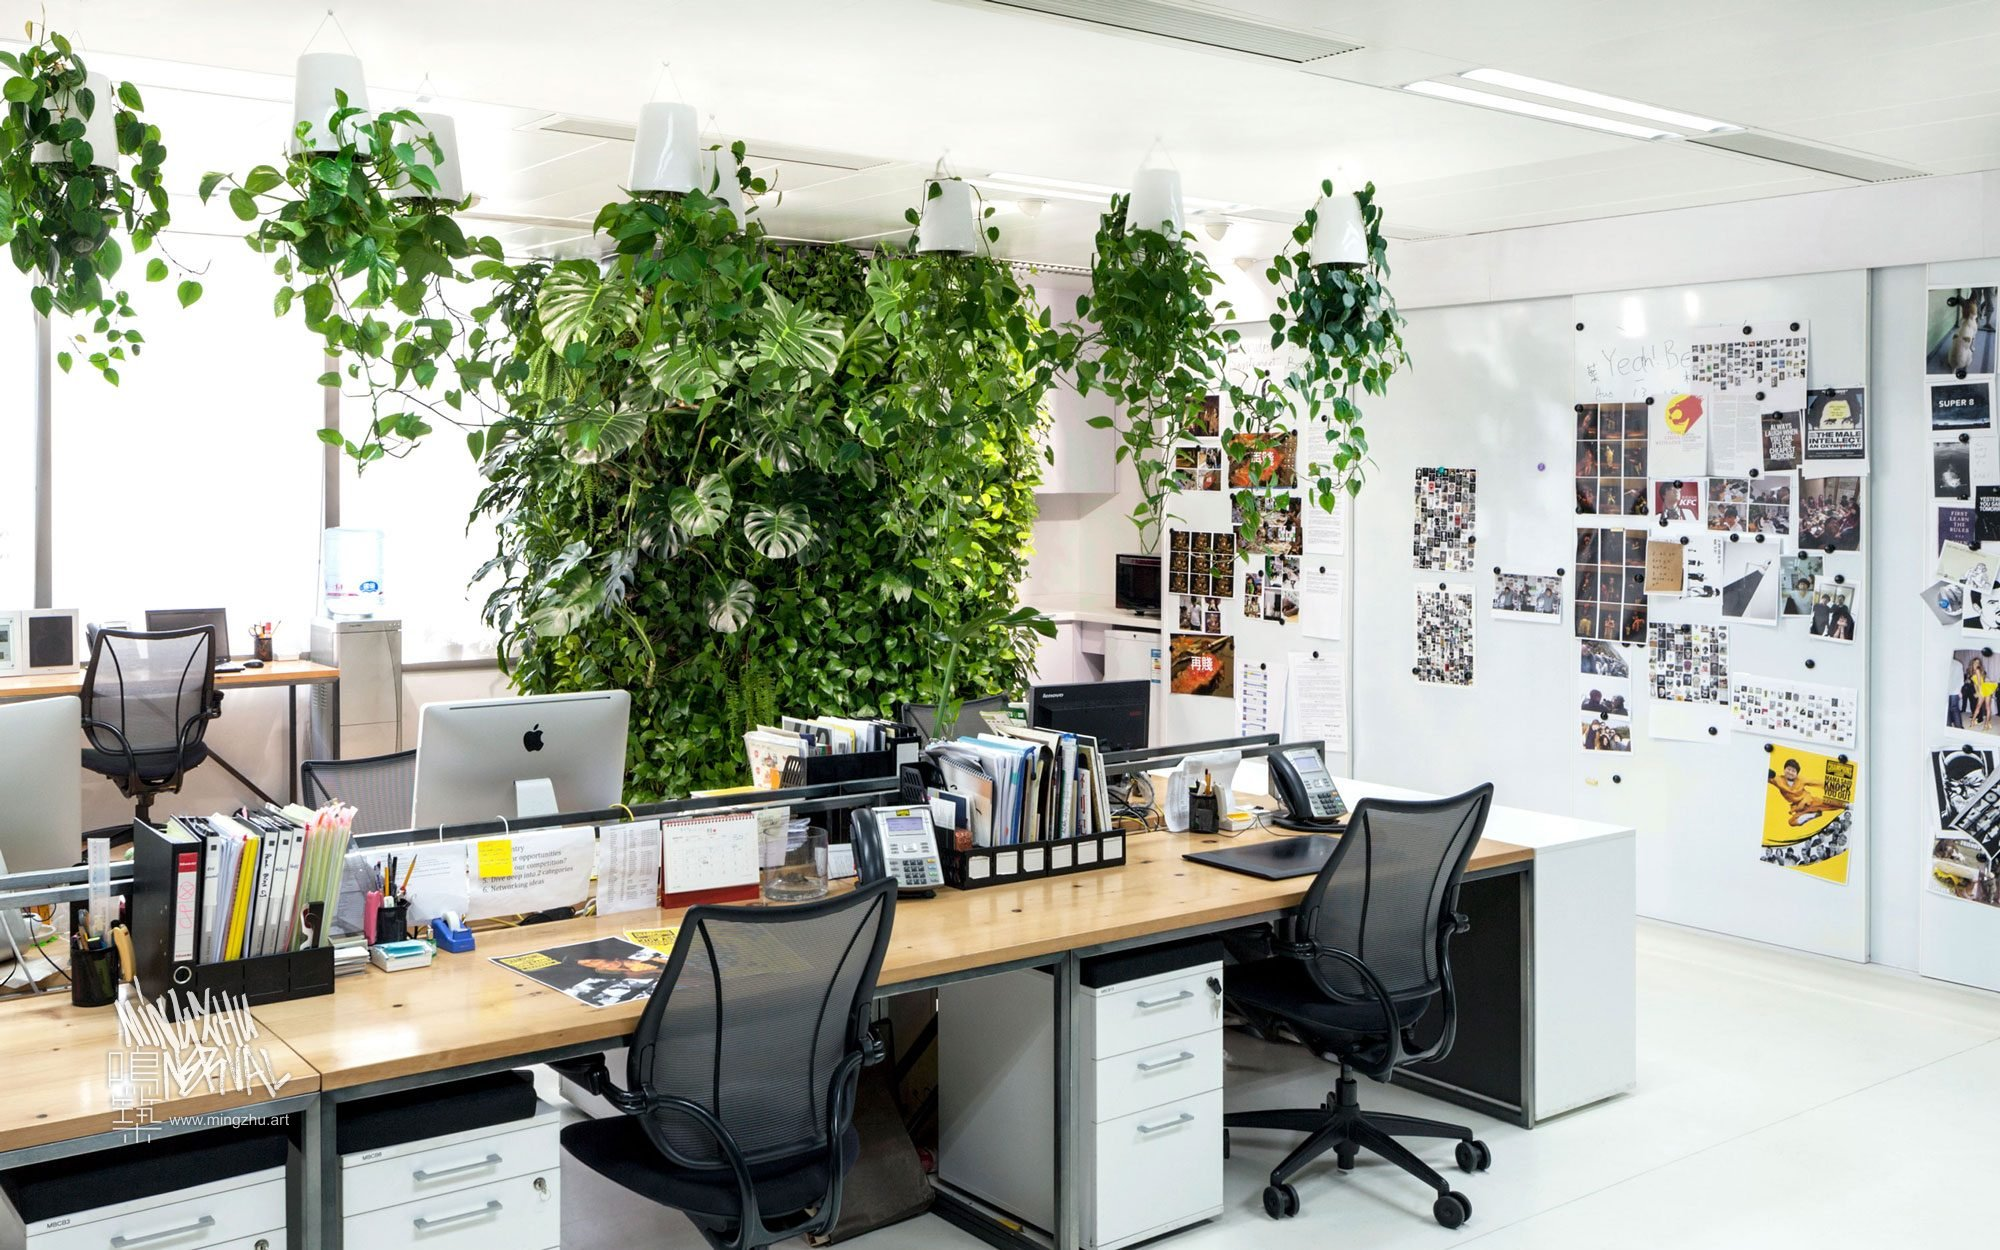 At Mingzhu Nerval, we thrive at creating the most beautiful vertical gardens in the world. For Landor, we created a pleasant living wall design - Shanghai, 2013.